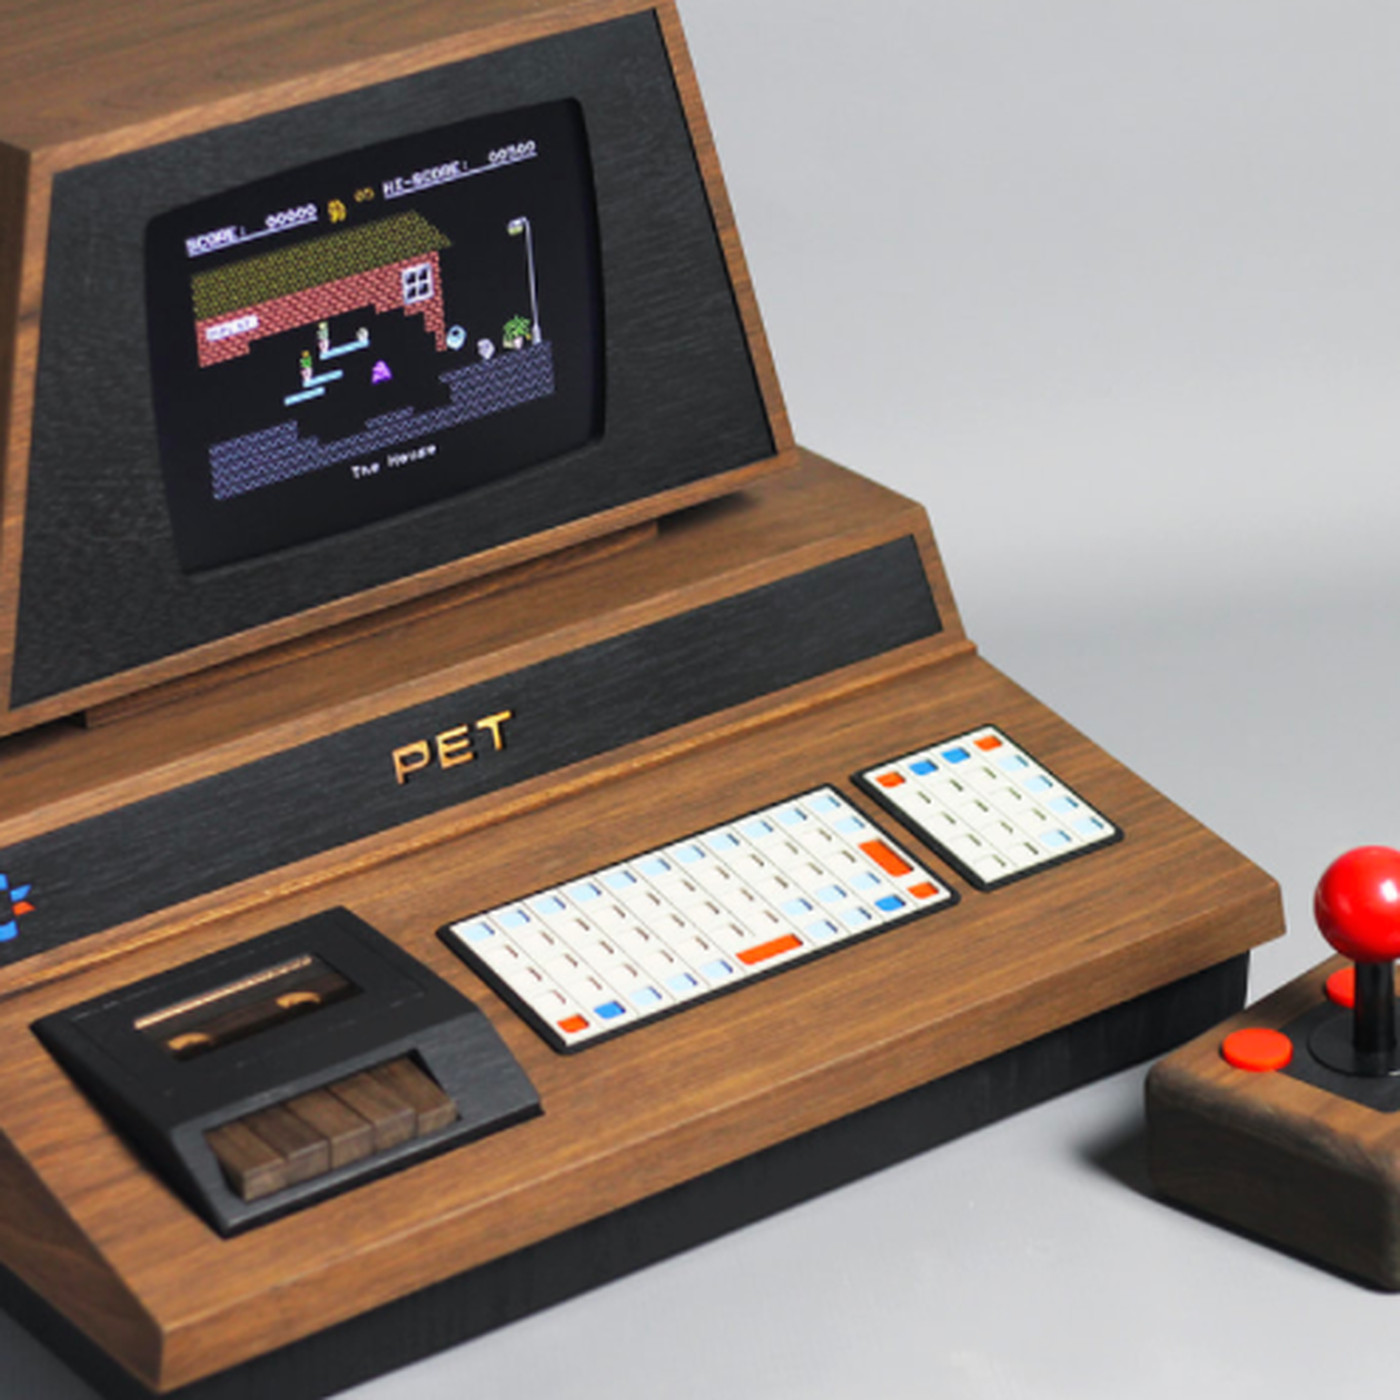 This custom Commodore PET 2001 is a beautifully crafted retro gaming